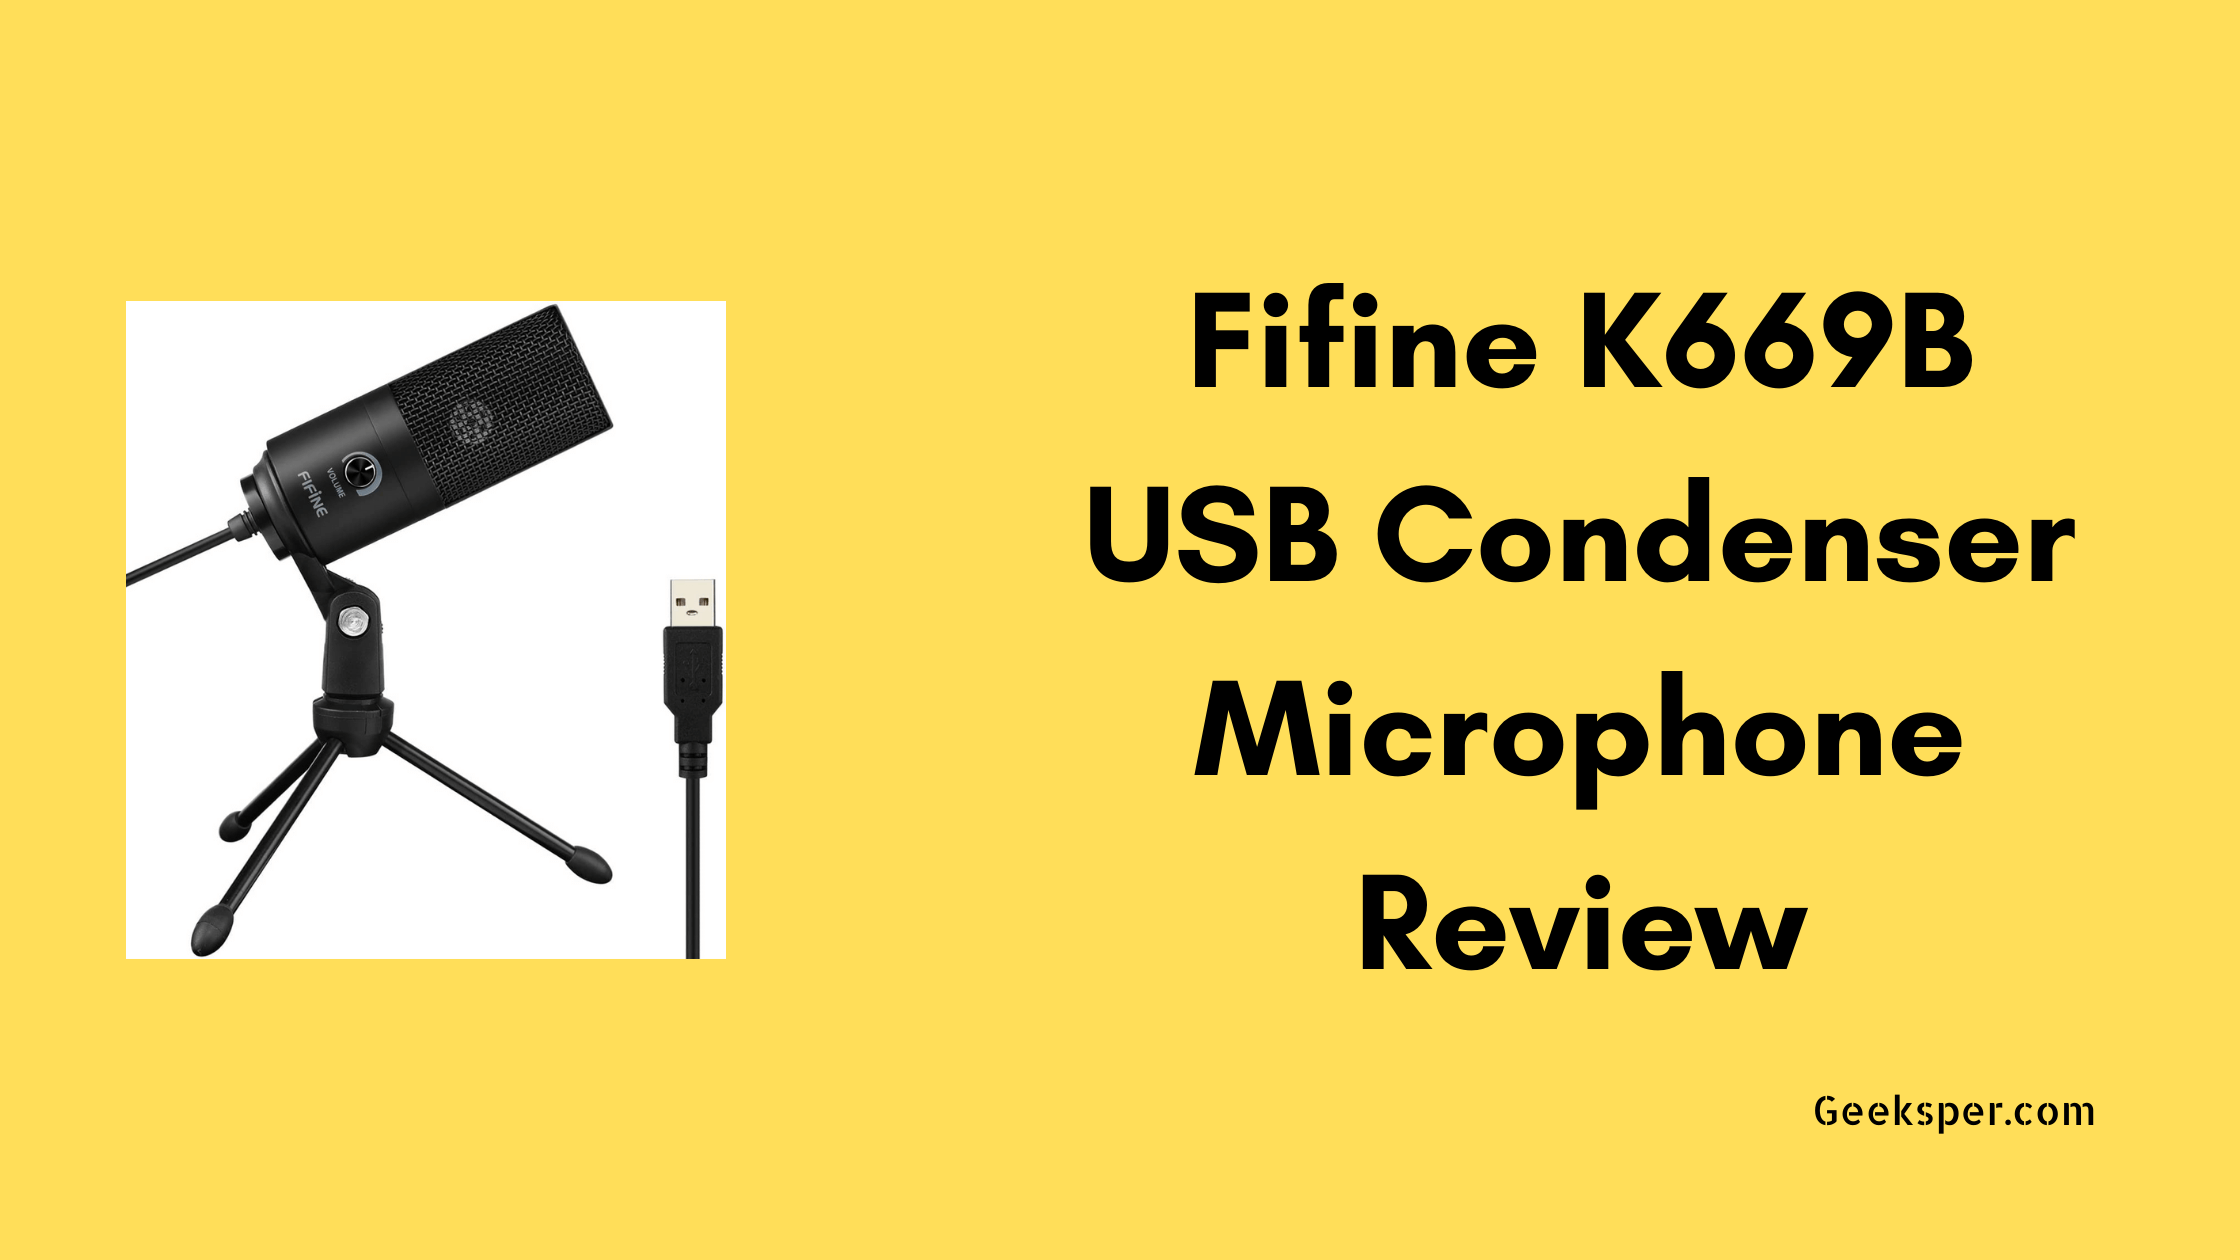 Fifine K669B USB Condenser Microphone Review